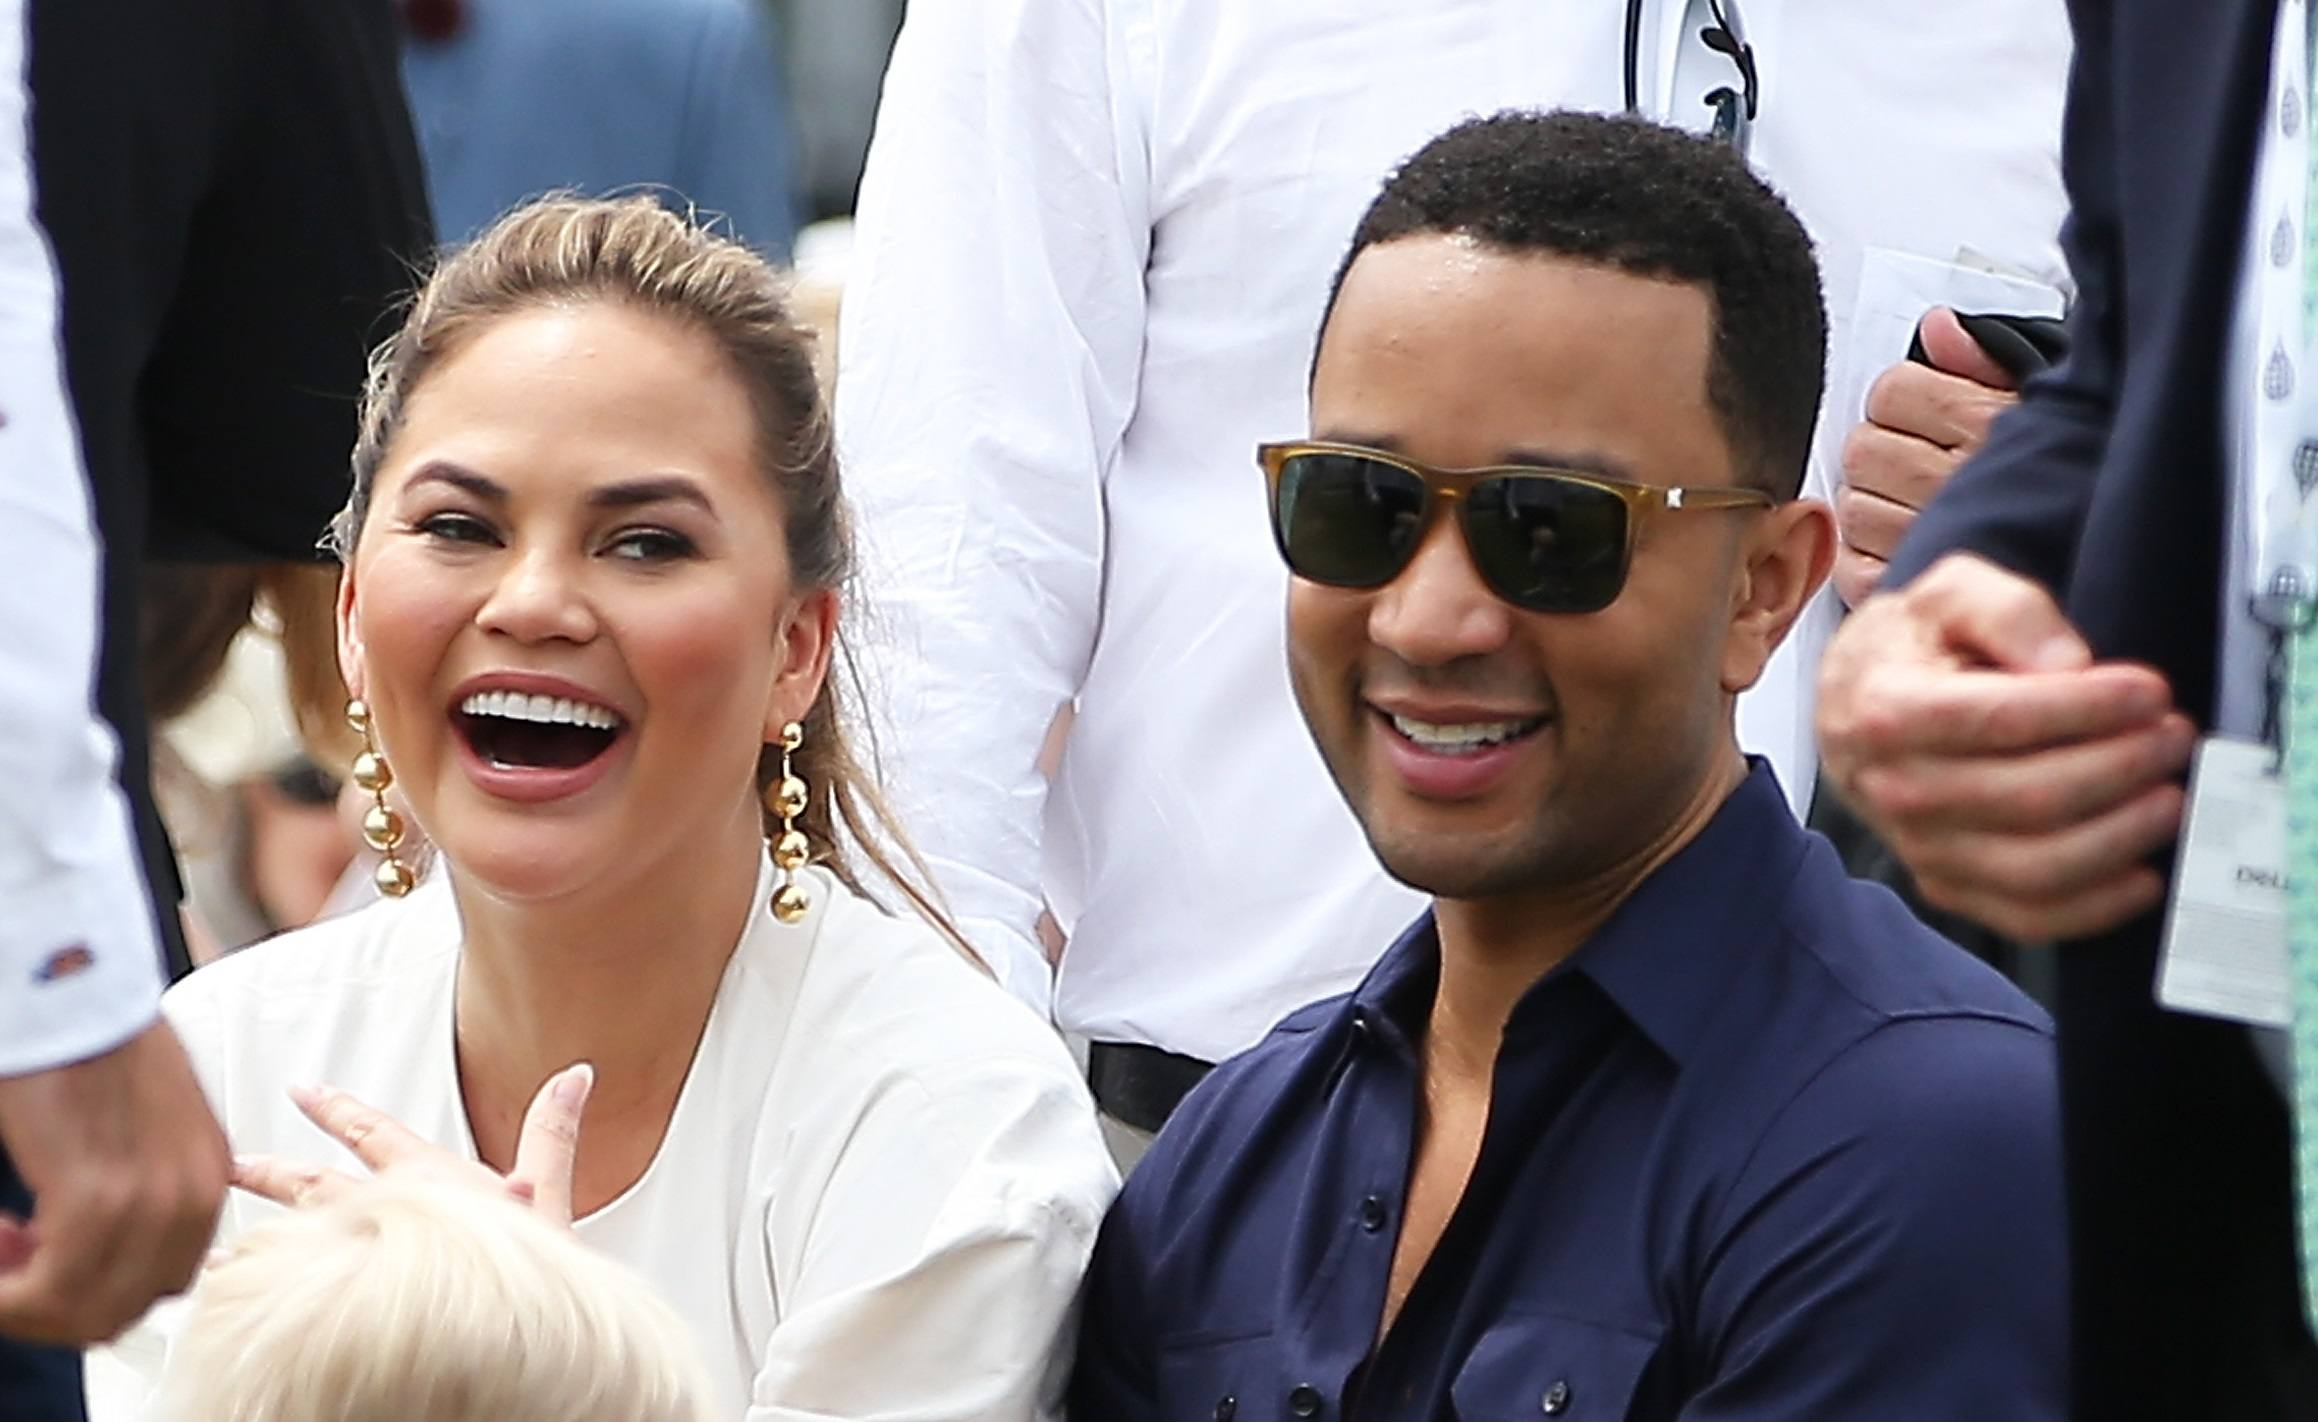 John Legend and Chrissy Teigen look on during the Tennis Hall of Fame induction ceremonies at the International Tennis Hall of Fame on July 22, 2017 in Newport, Rhode Island.